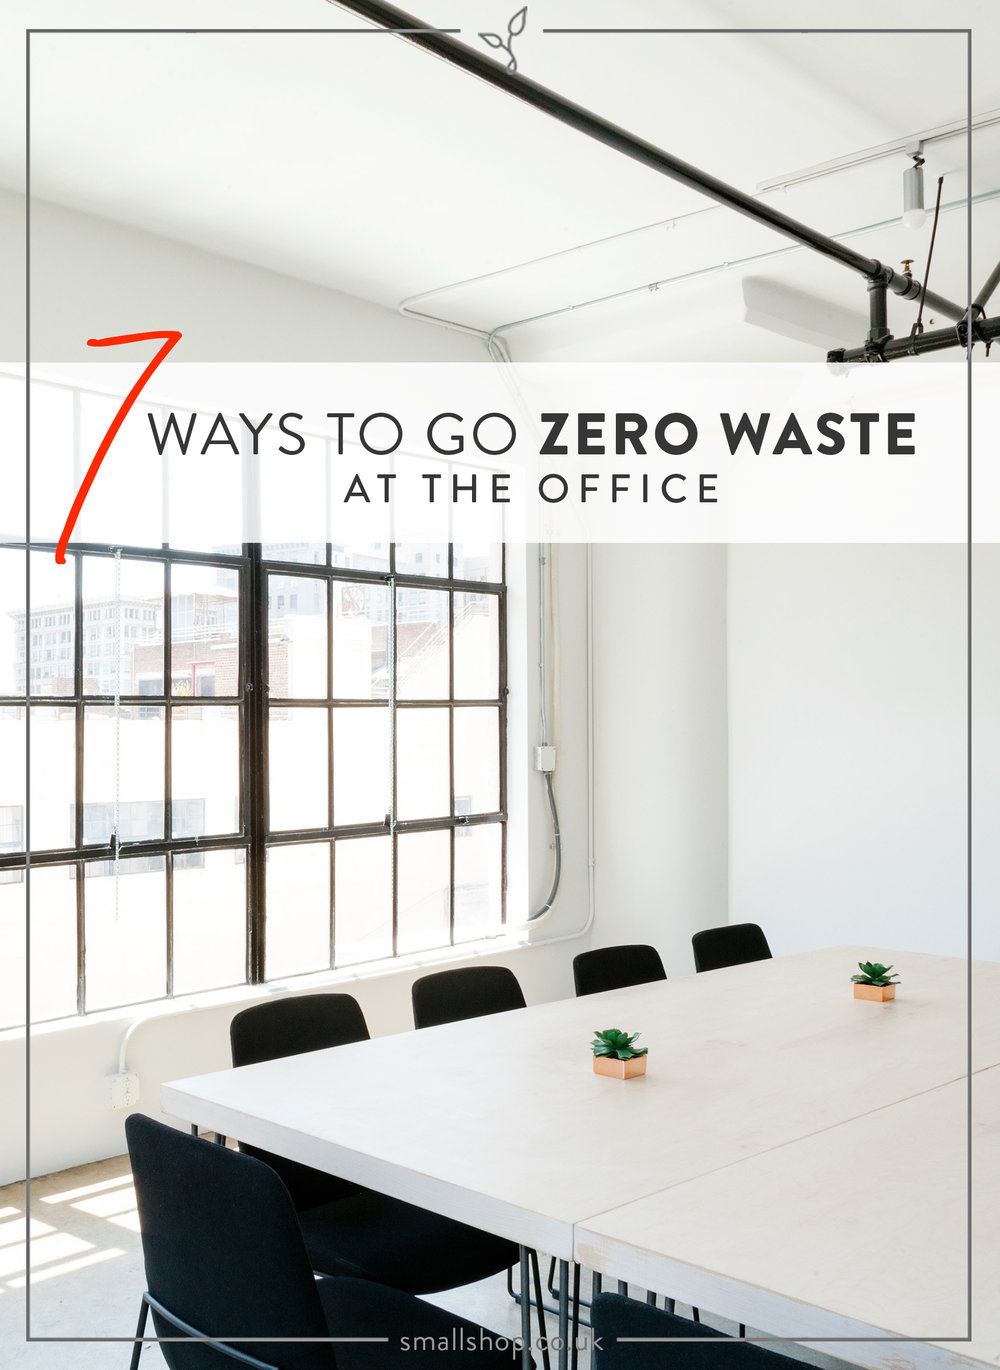 7 ways to go zero waste at the office